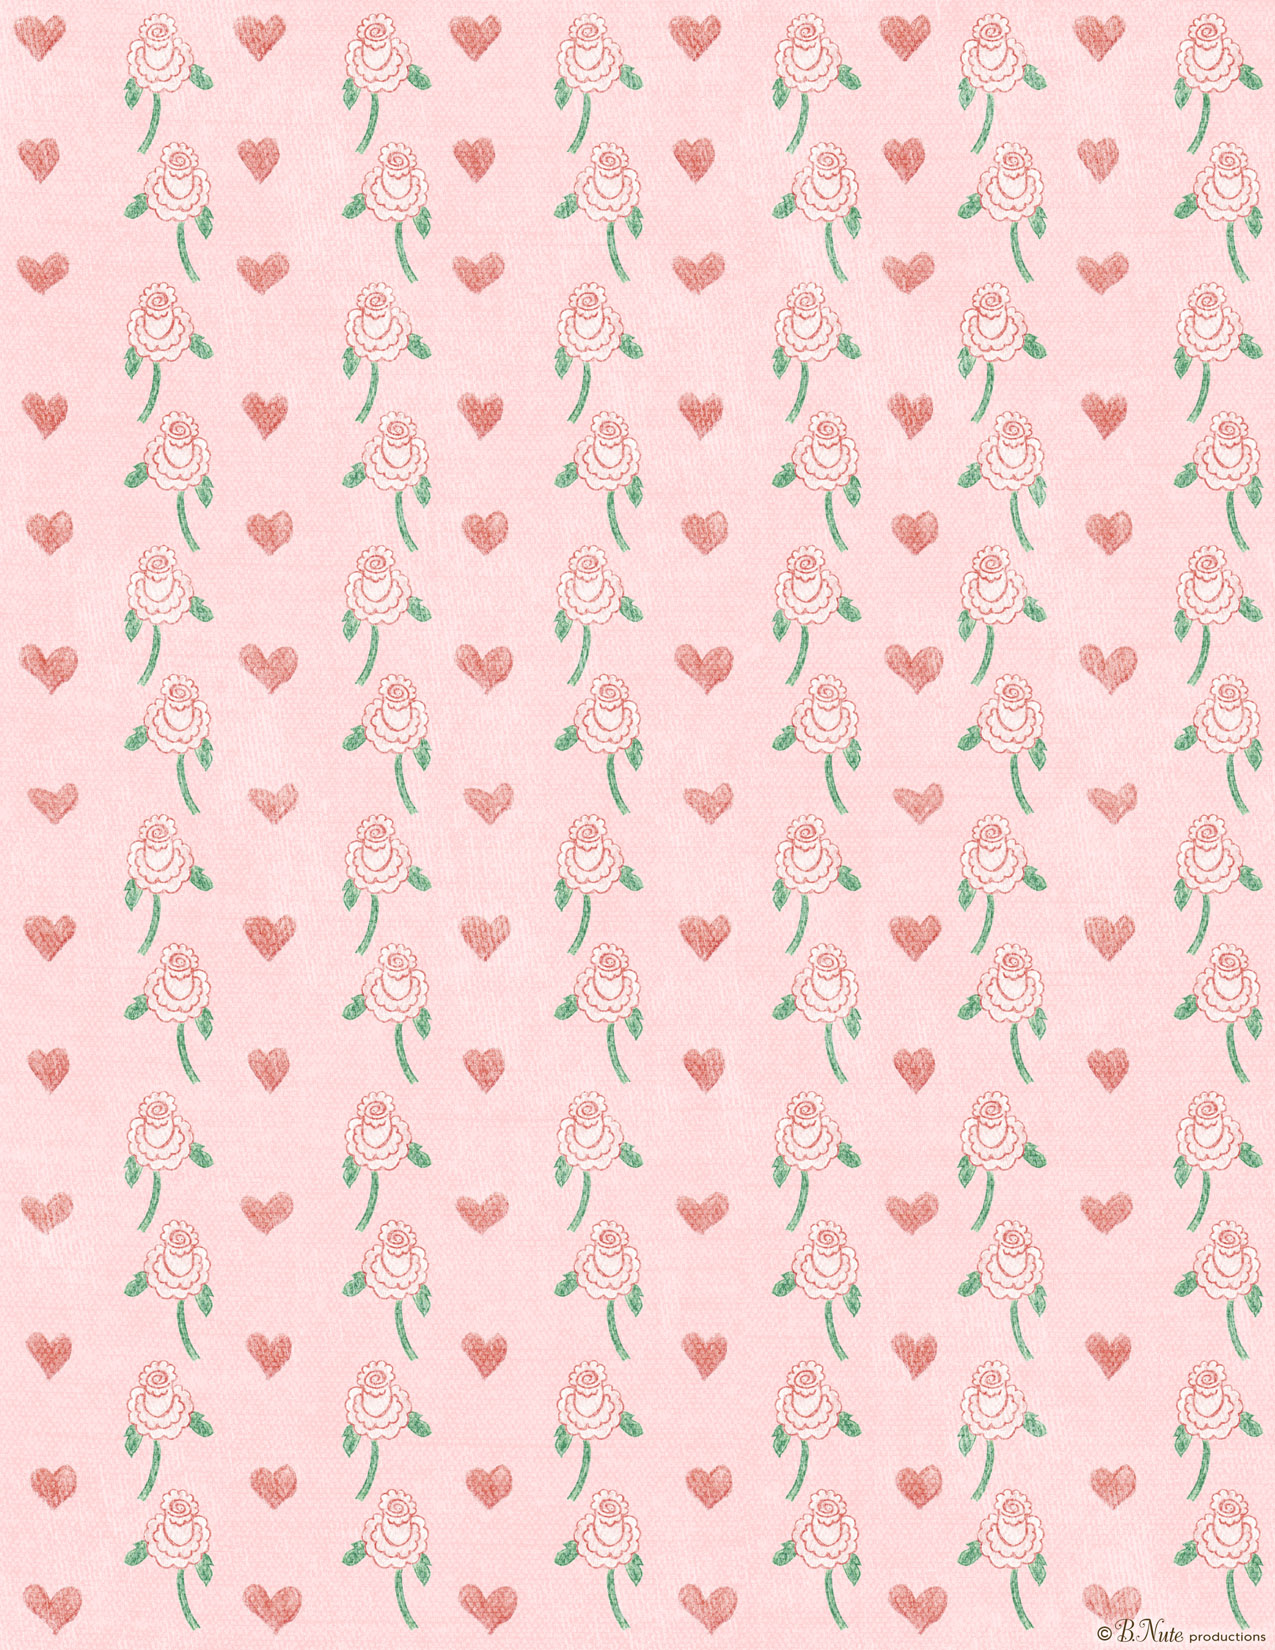 Bnute productions free printable valentine craft or scrapbook paper free printable hearts n flowers valentines craft paper by bte productions jeuxipadfo Choice Image